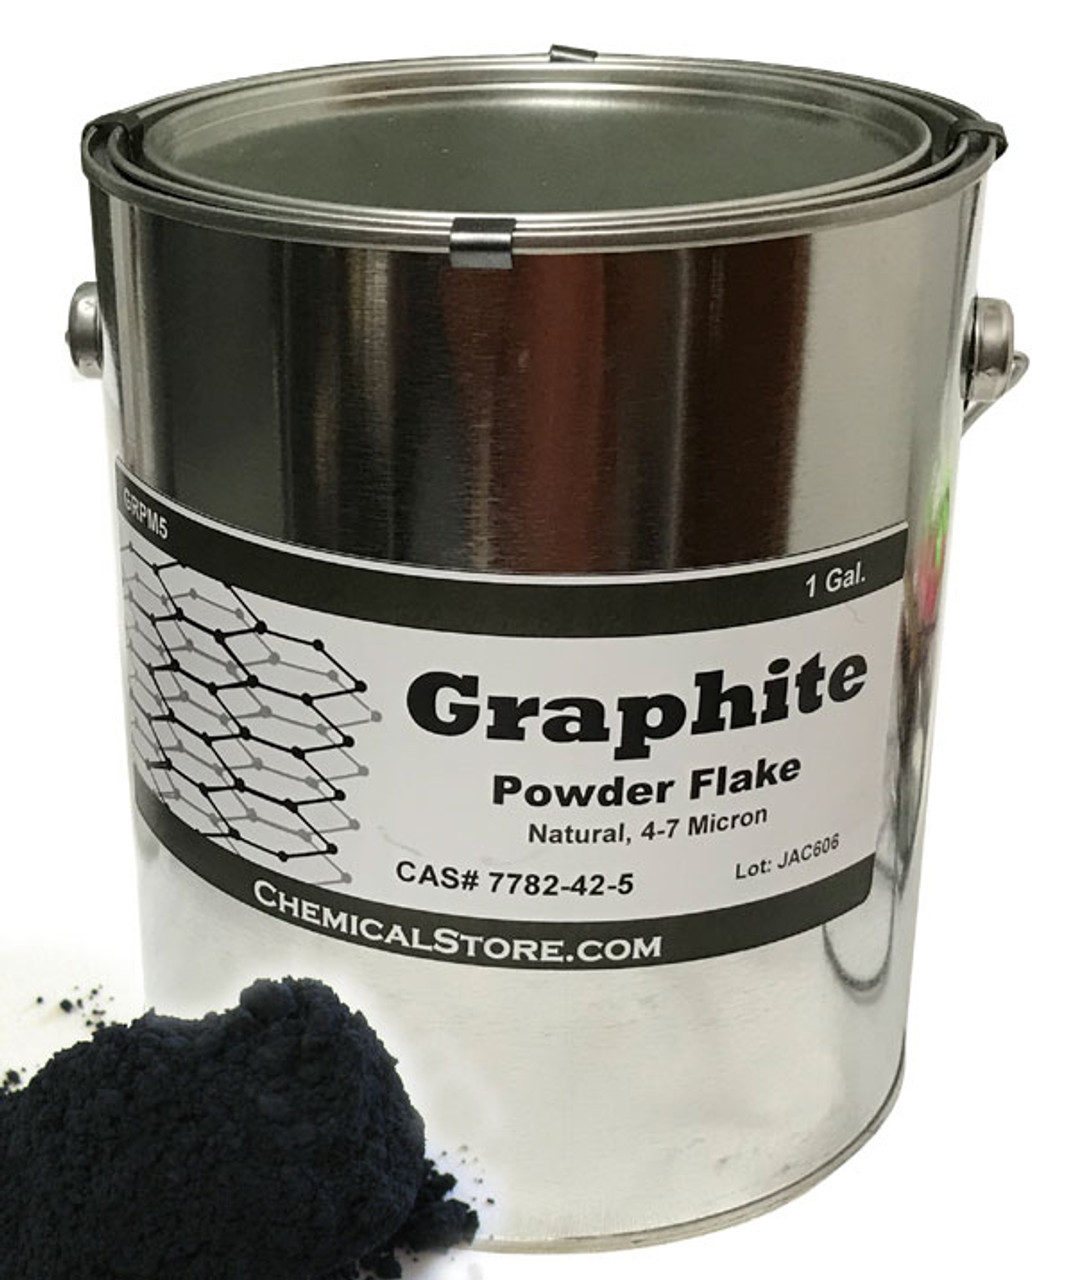 Conductive and lubricant graphite that creates metallic shine in one gallon can.